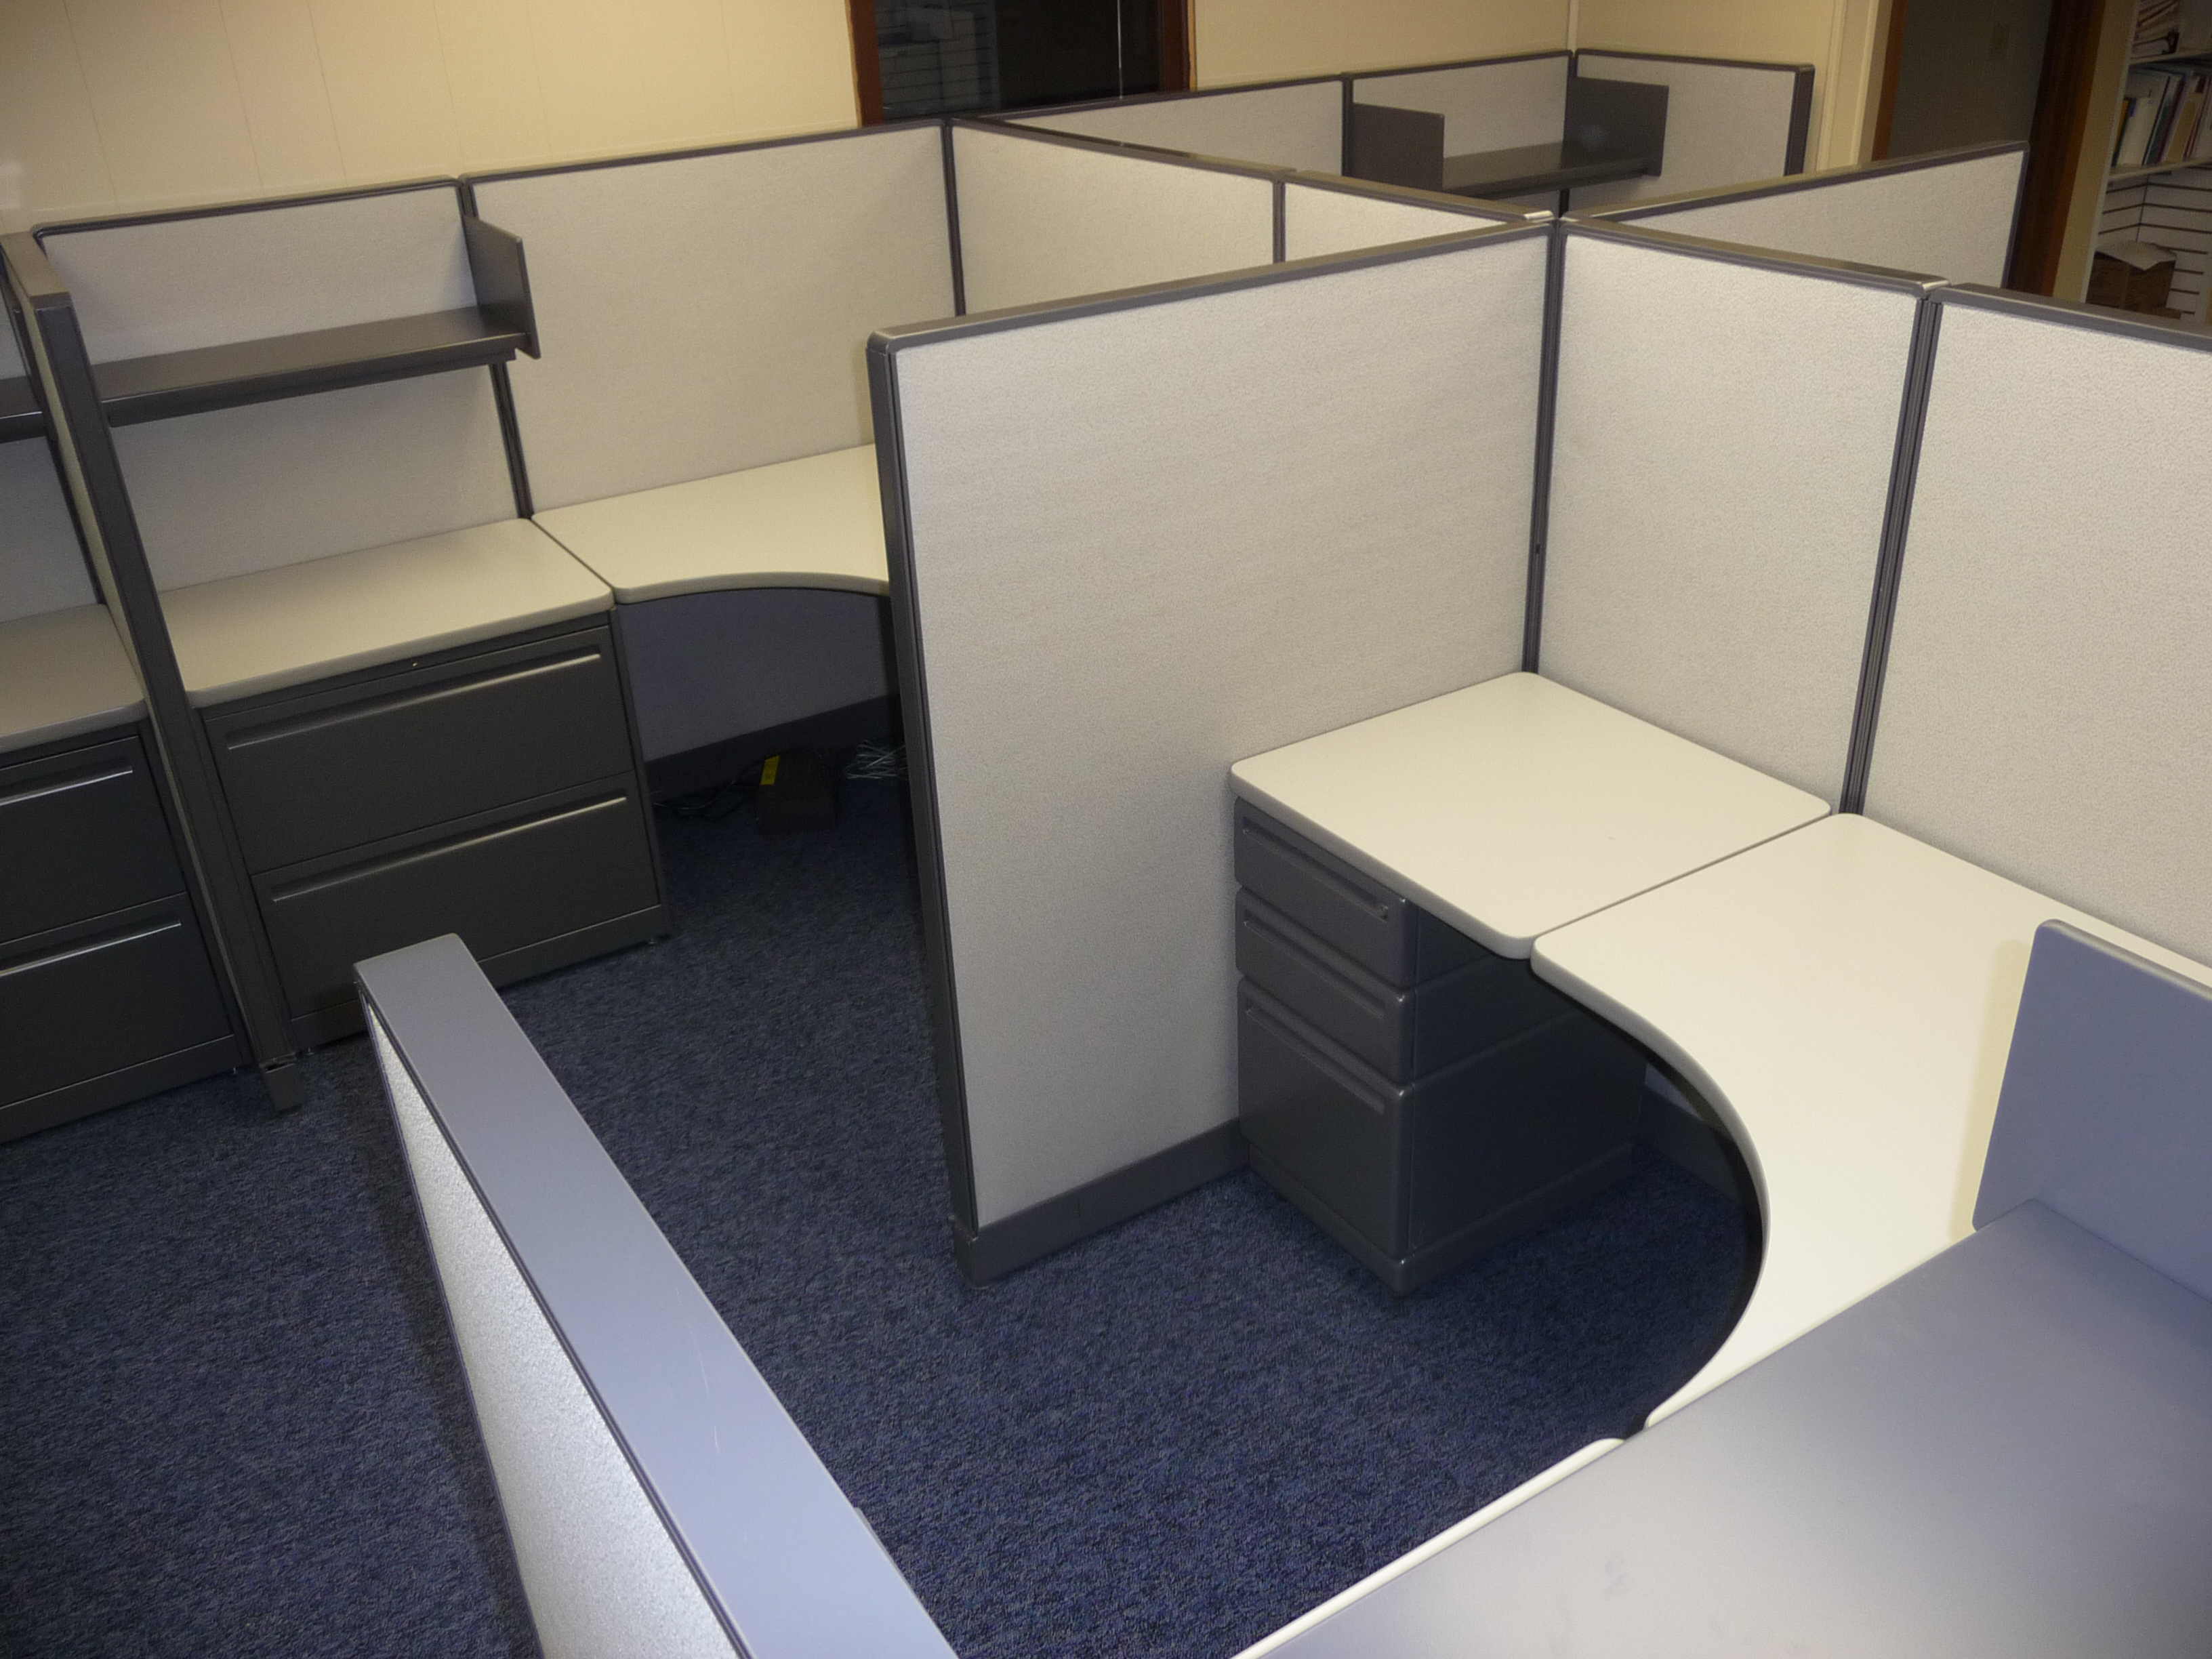 Office Furniture Installation Chicago Dba Cube Install Inc  # Haworth Muebles Oficina